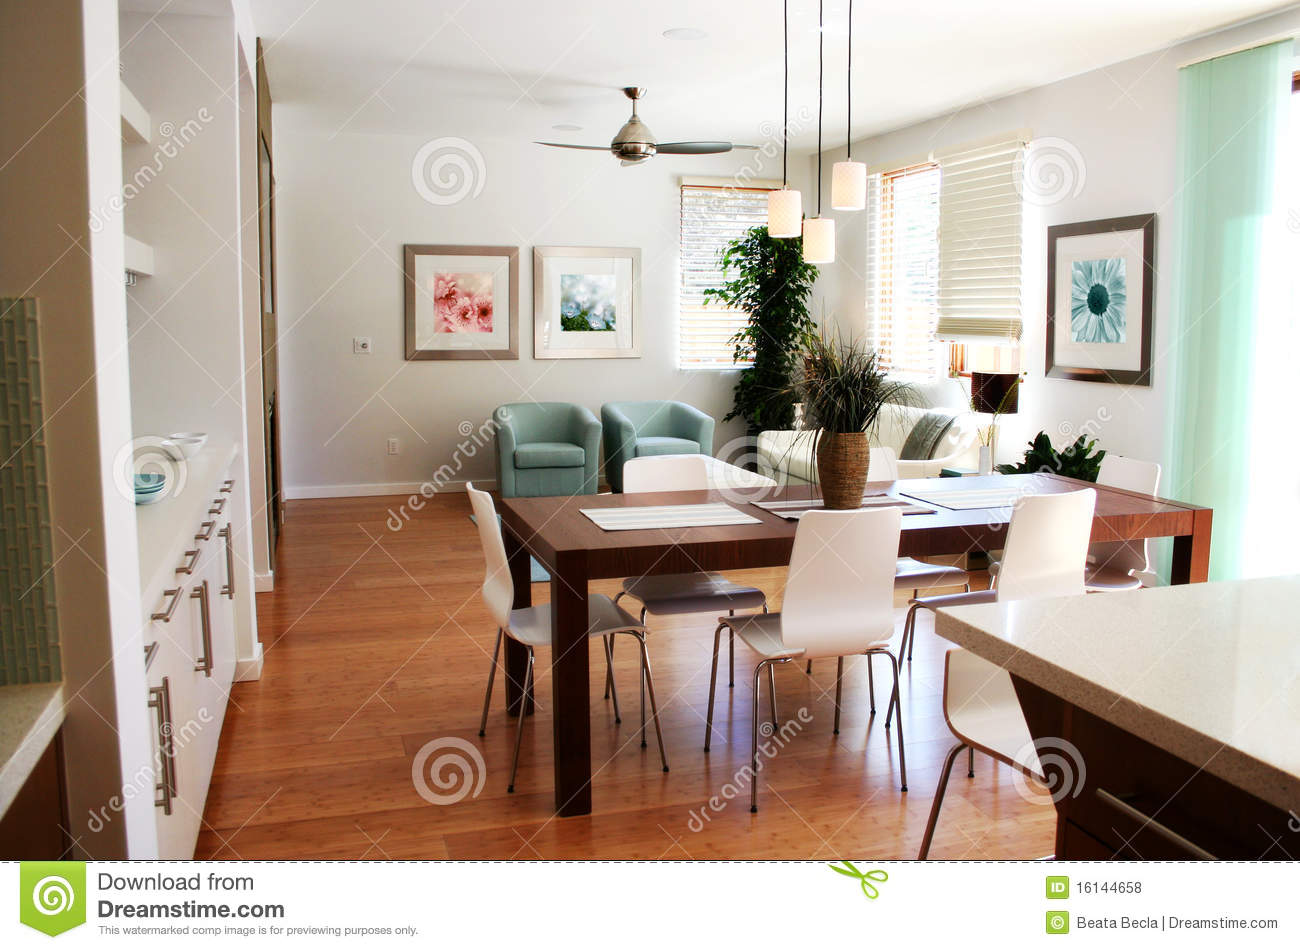 Delightful Royalty Free Stock Photo. Download Modern Sitting Room And Dining Area ... Part 26